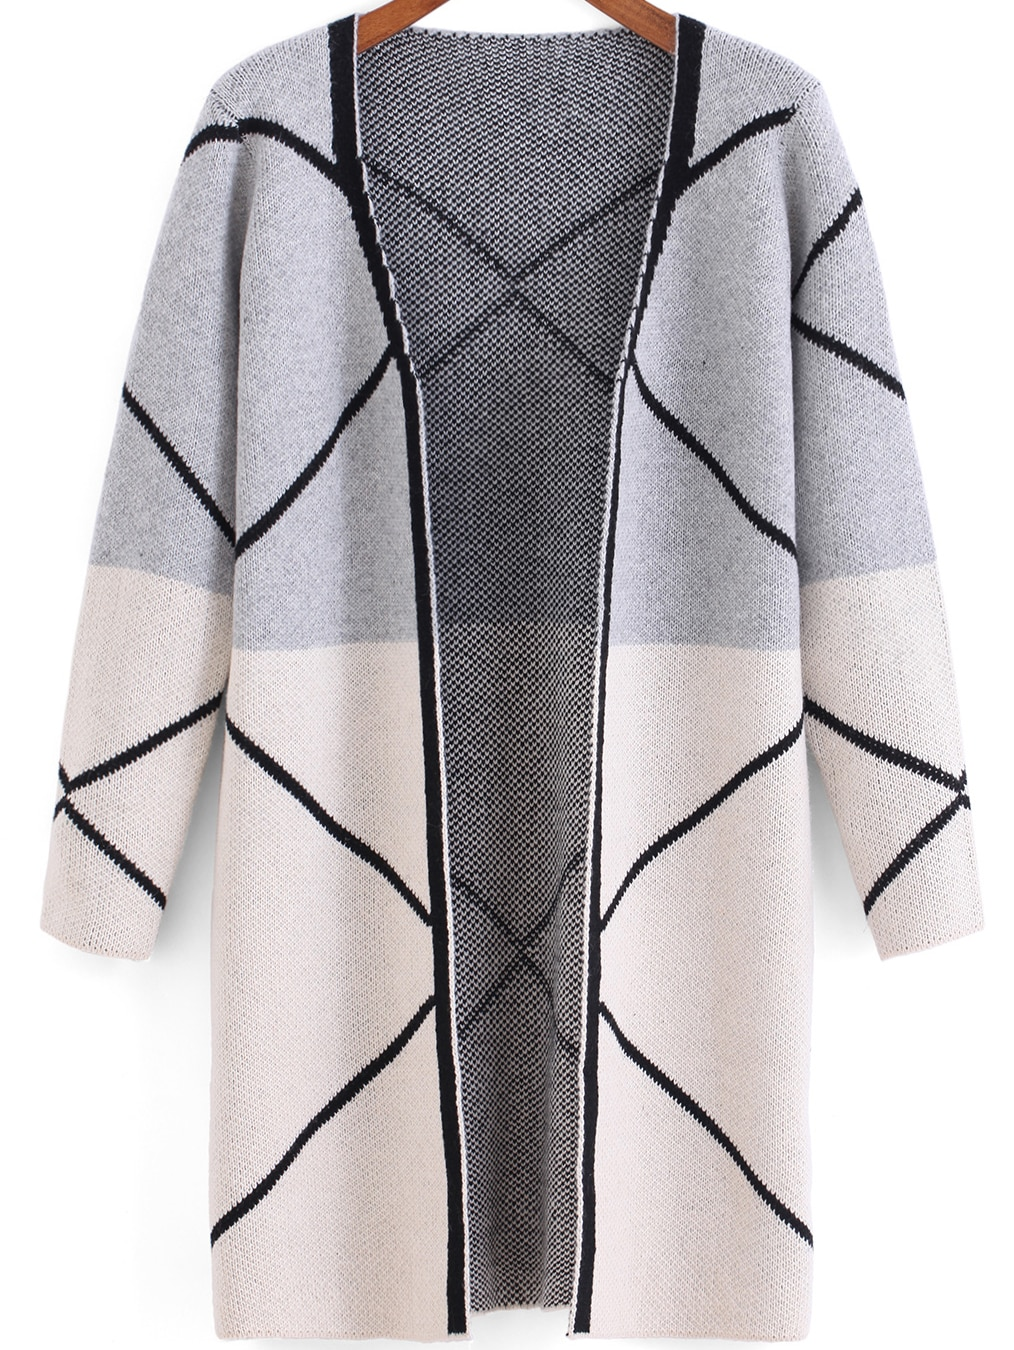 Light Grey White Long Sleeve Line Print Cardigan -SheIn(Sheinside)